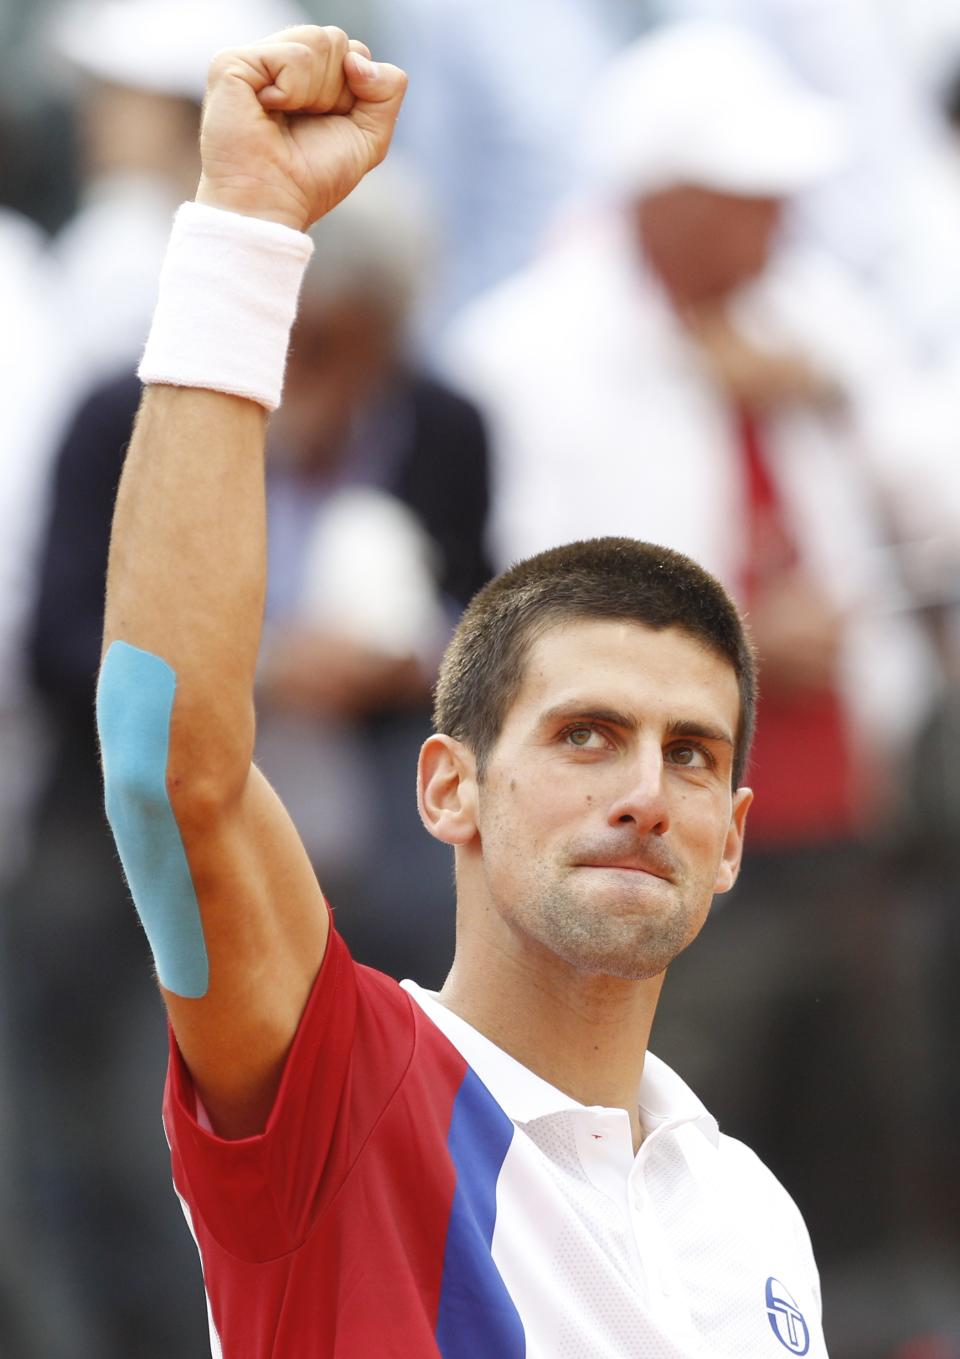 Serbia's Novak Djokovic celebrates after defeating France's Jo-Wilfried Tsonga at the Italian Open tennis tournament, in Rome, Friday, May 18, 2012. Djokovic won 7-5, 6-1. (AP Photo/Andrew Medichini)